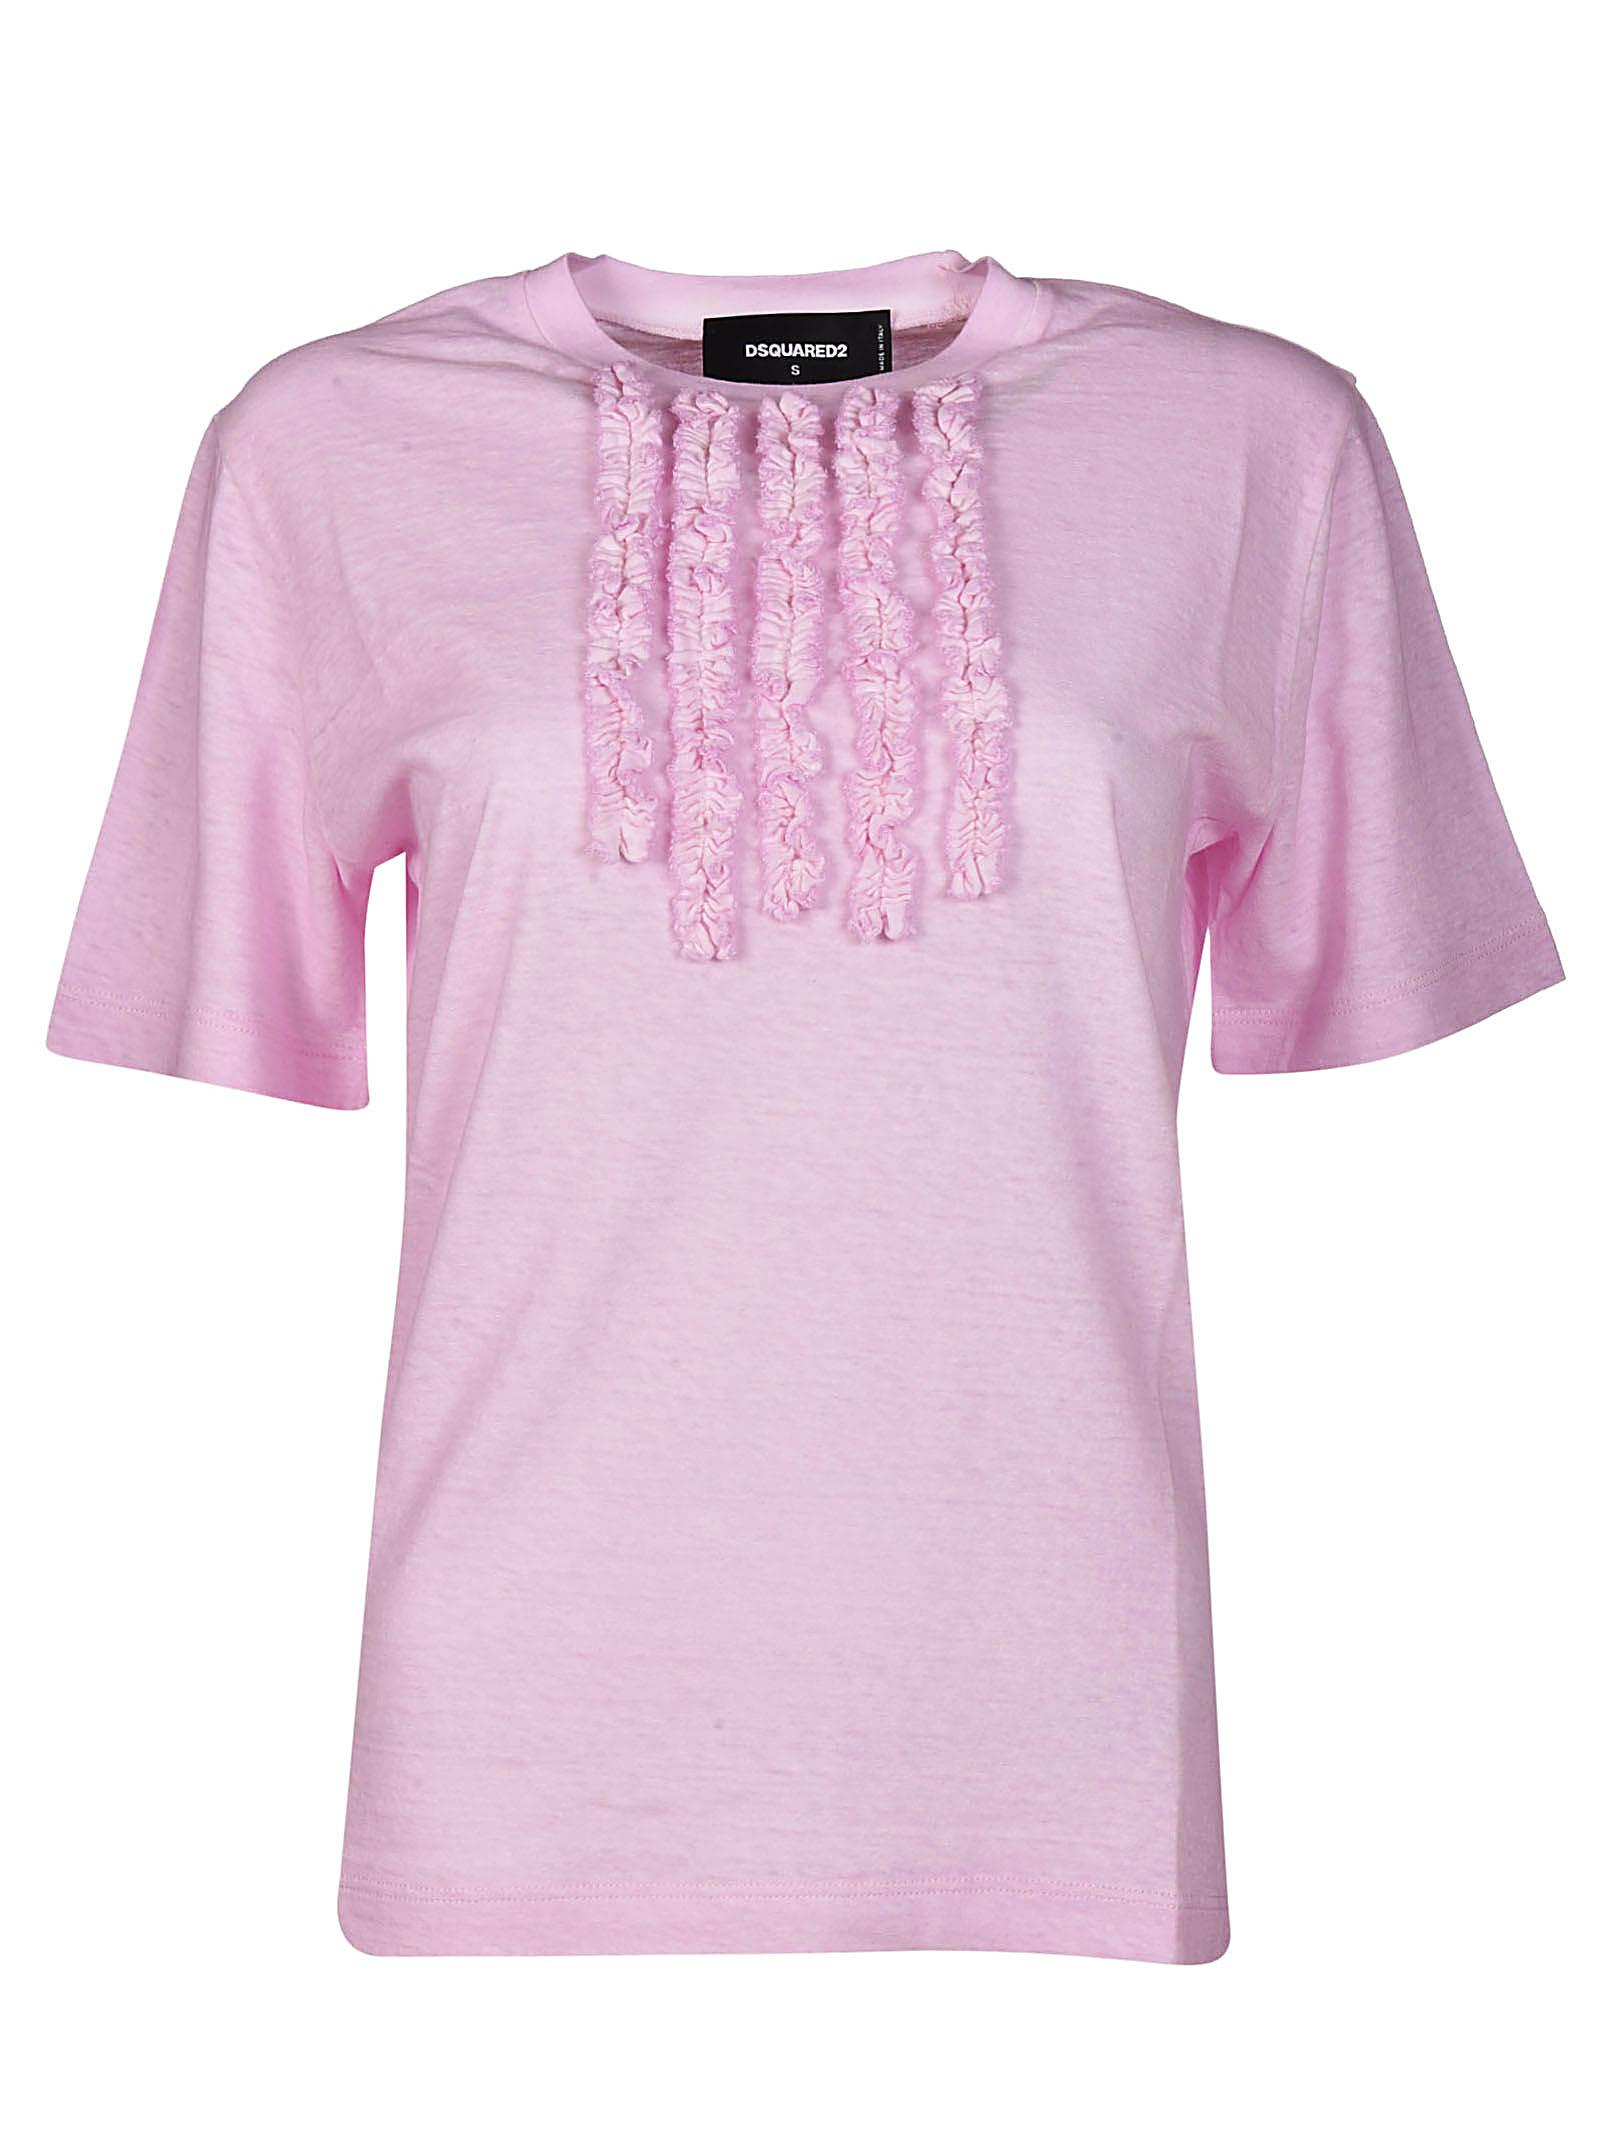 Visit Cheap Online White and pink ruffled t-shirt Dsquared2 For Sale Discount Sale 2018 New For Sale ox67JZWk